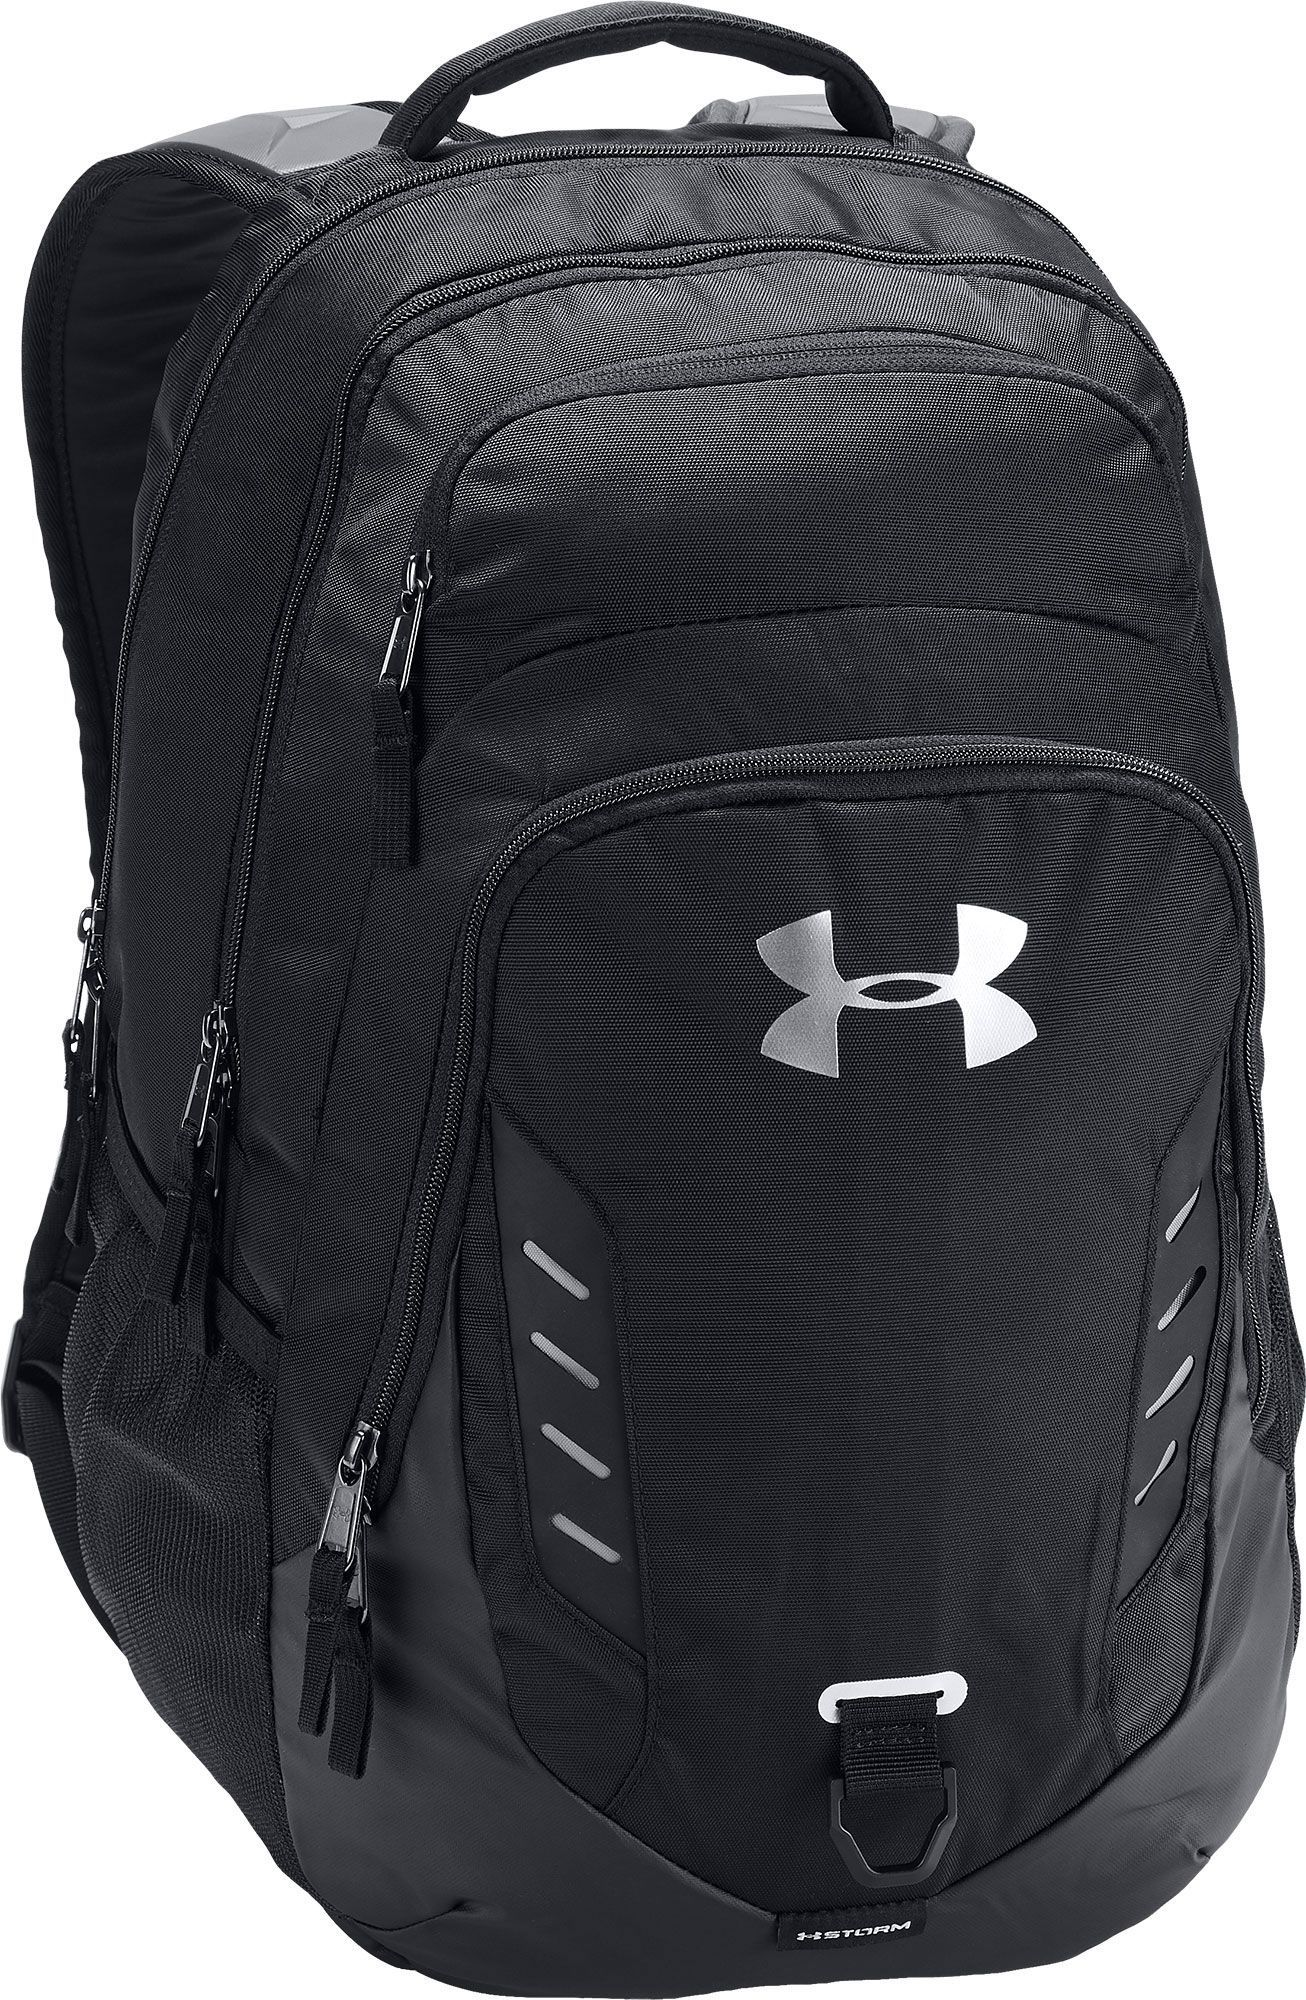 ee24dcd19e69 Under Armour Recruit 2.0 Backpack in 2019